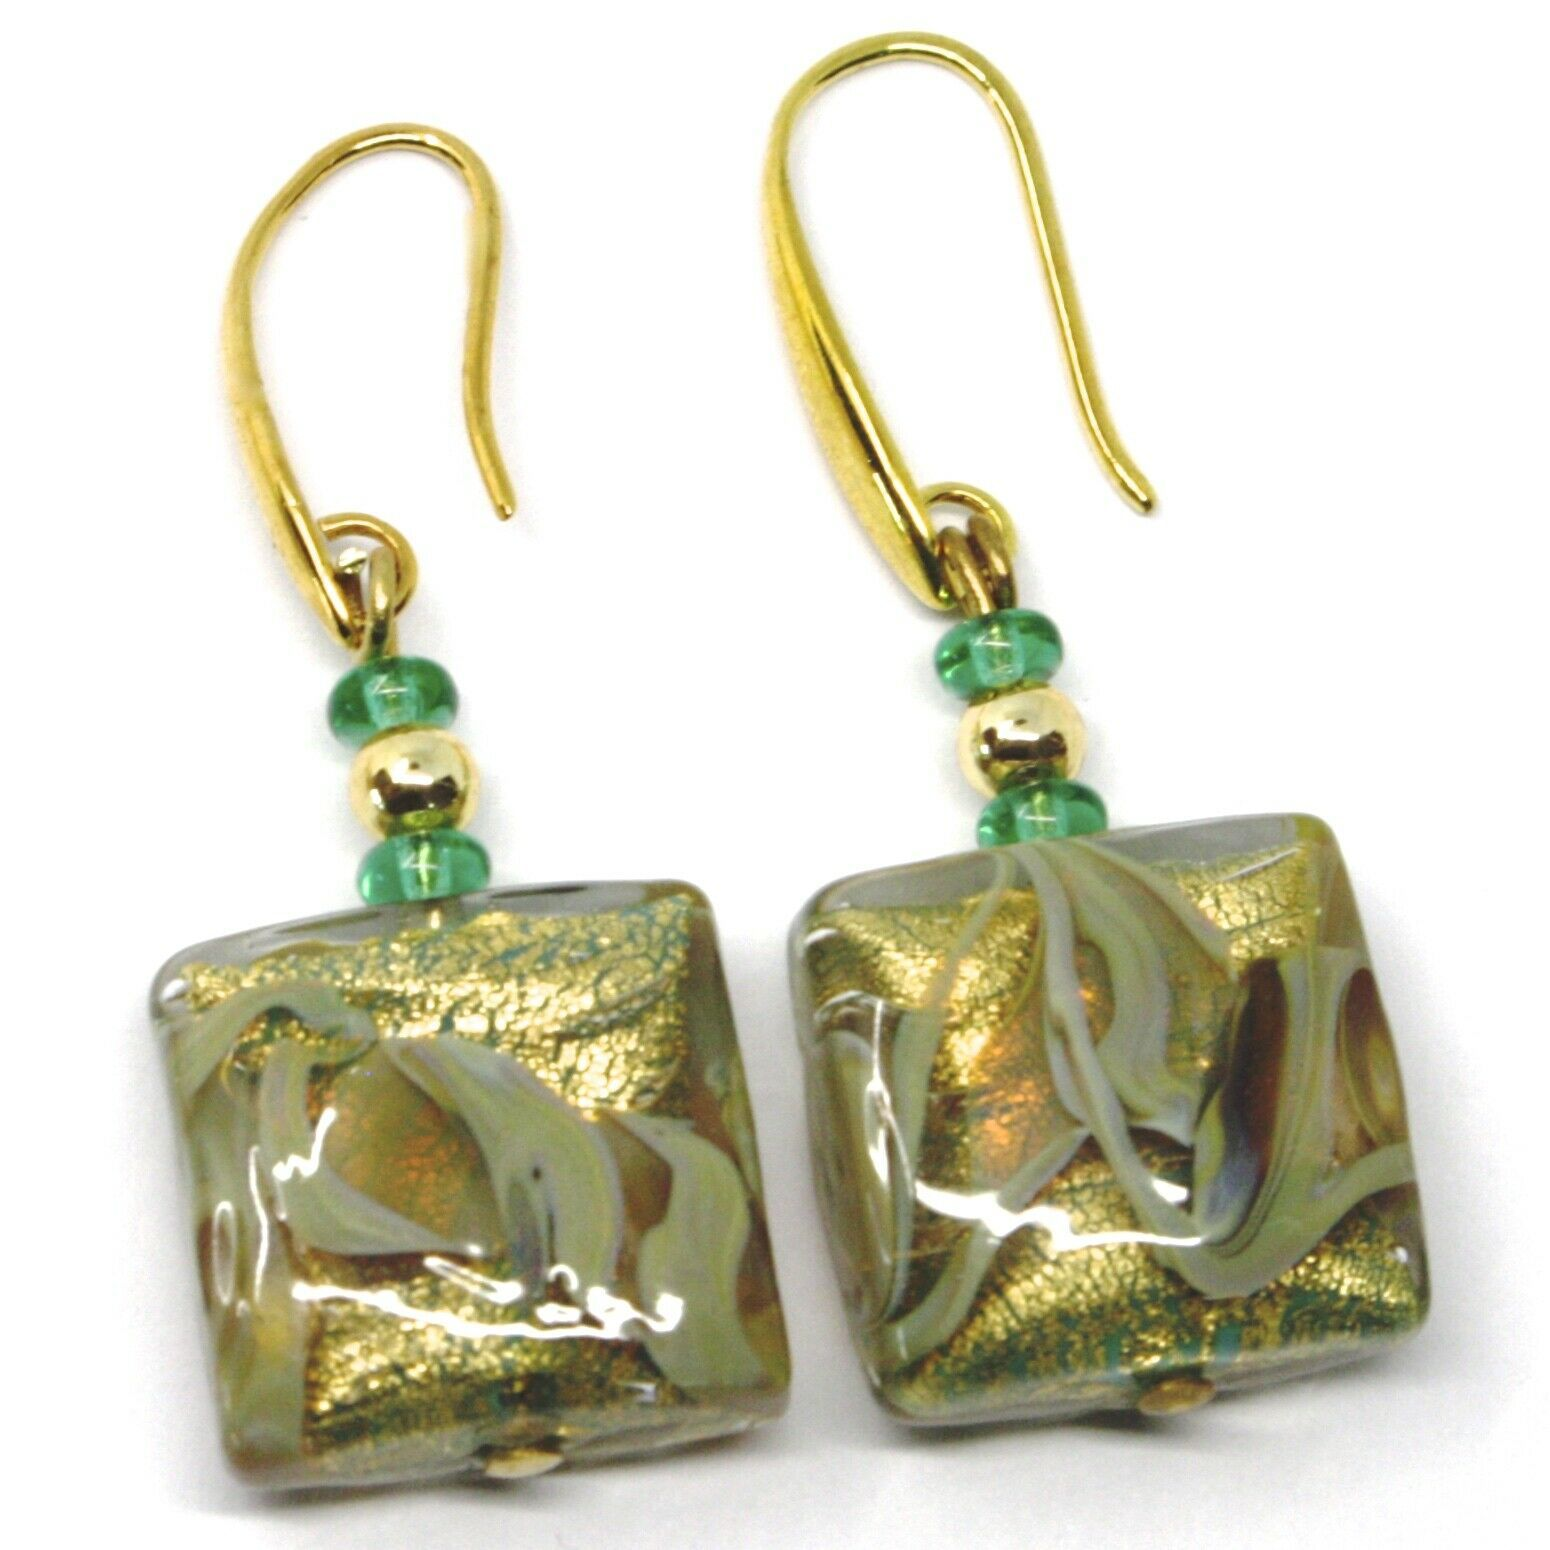 PENDANT EARRINGS WITH GREEN MURANO SQUARE GLASS WITH GOLD LEAF, MADE IN ITALY